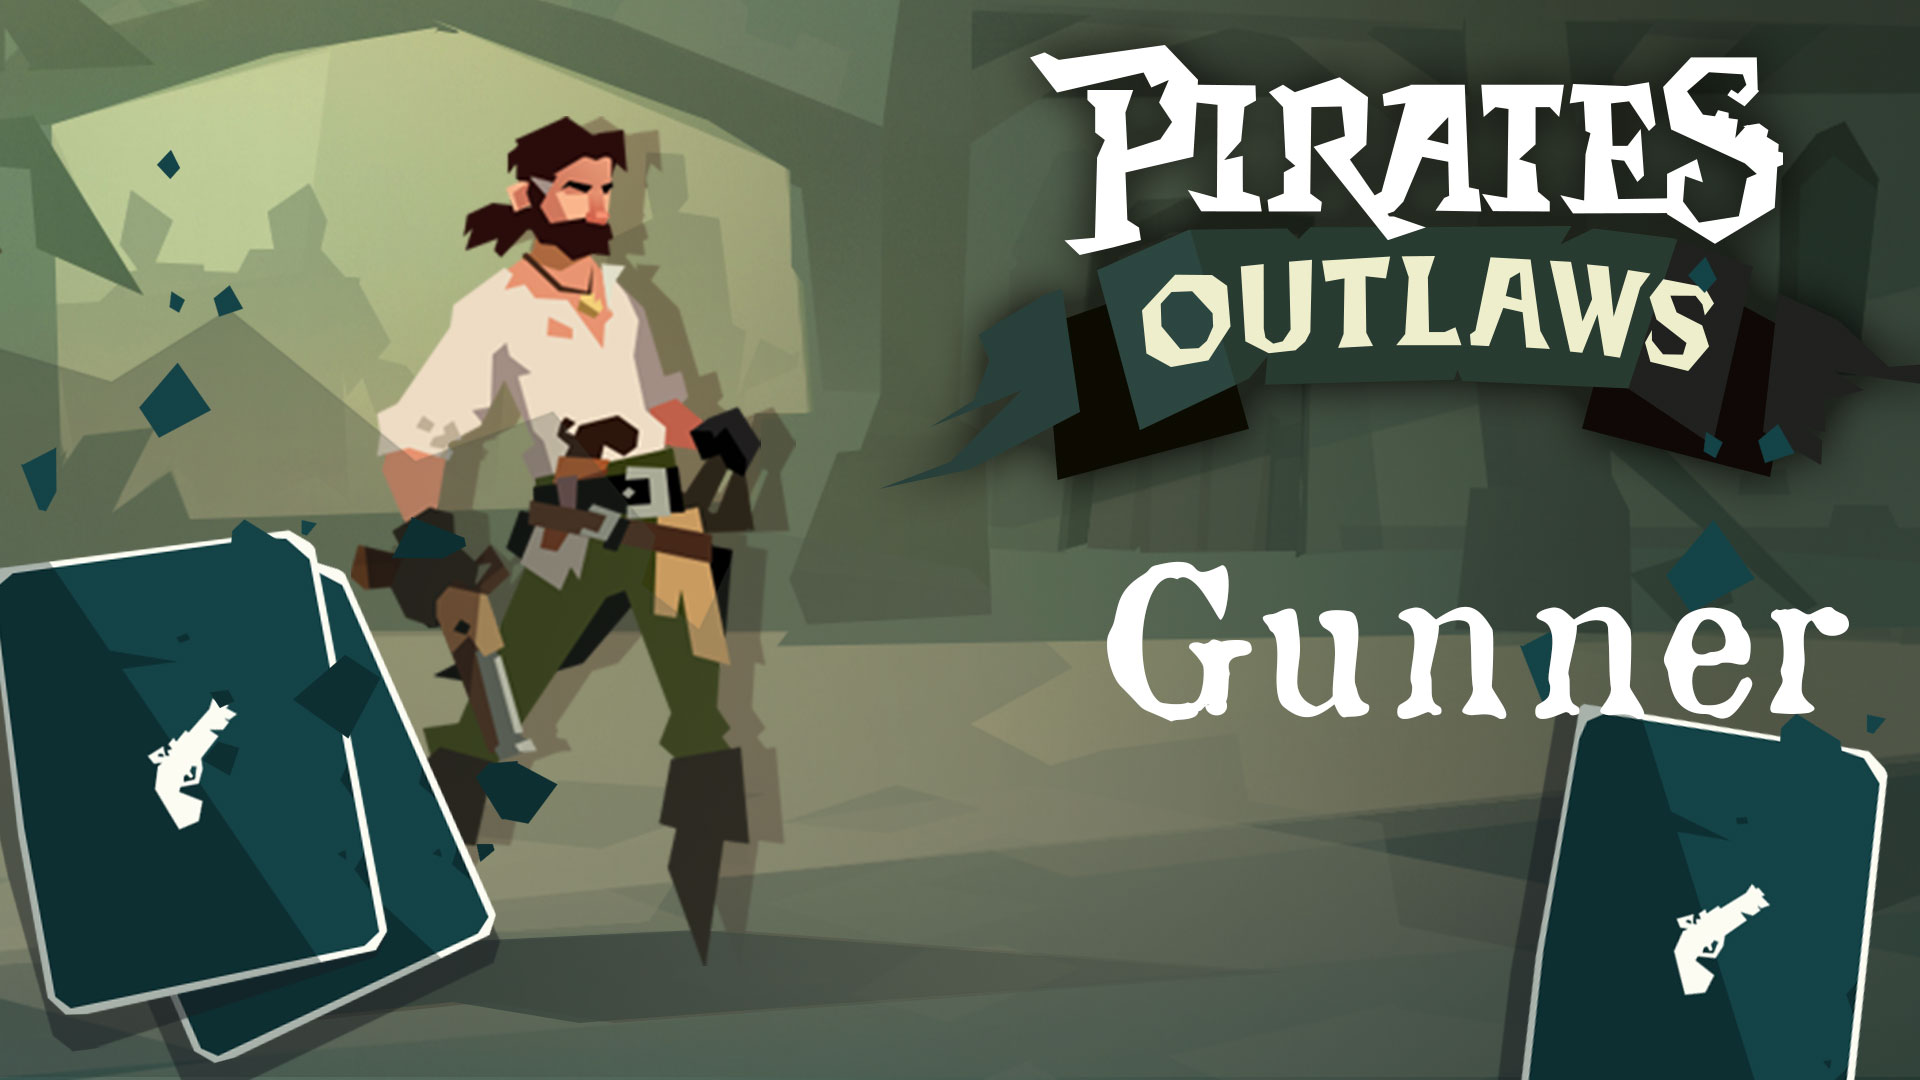 HOW TO PLAY - Gameplay tuto videos. Learn how to play all Characters in Pirates Outlaws on our official YouTube channel.